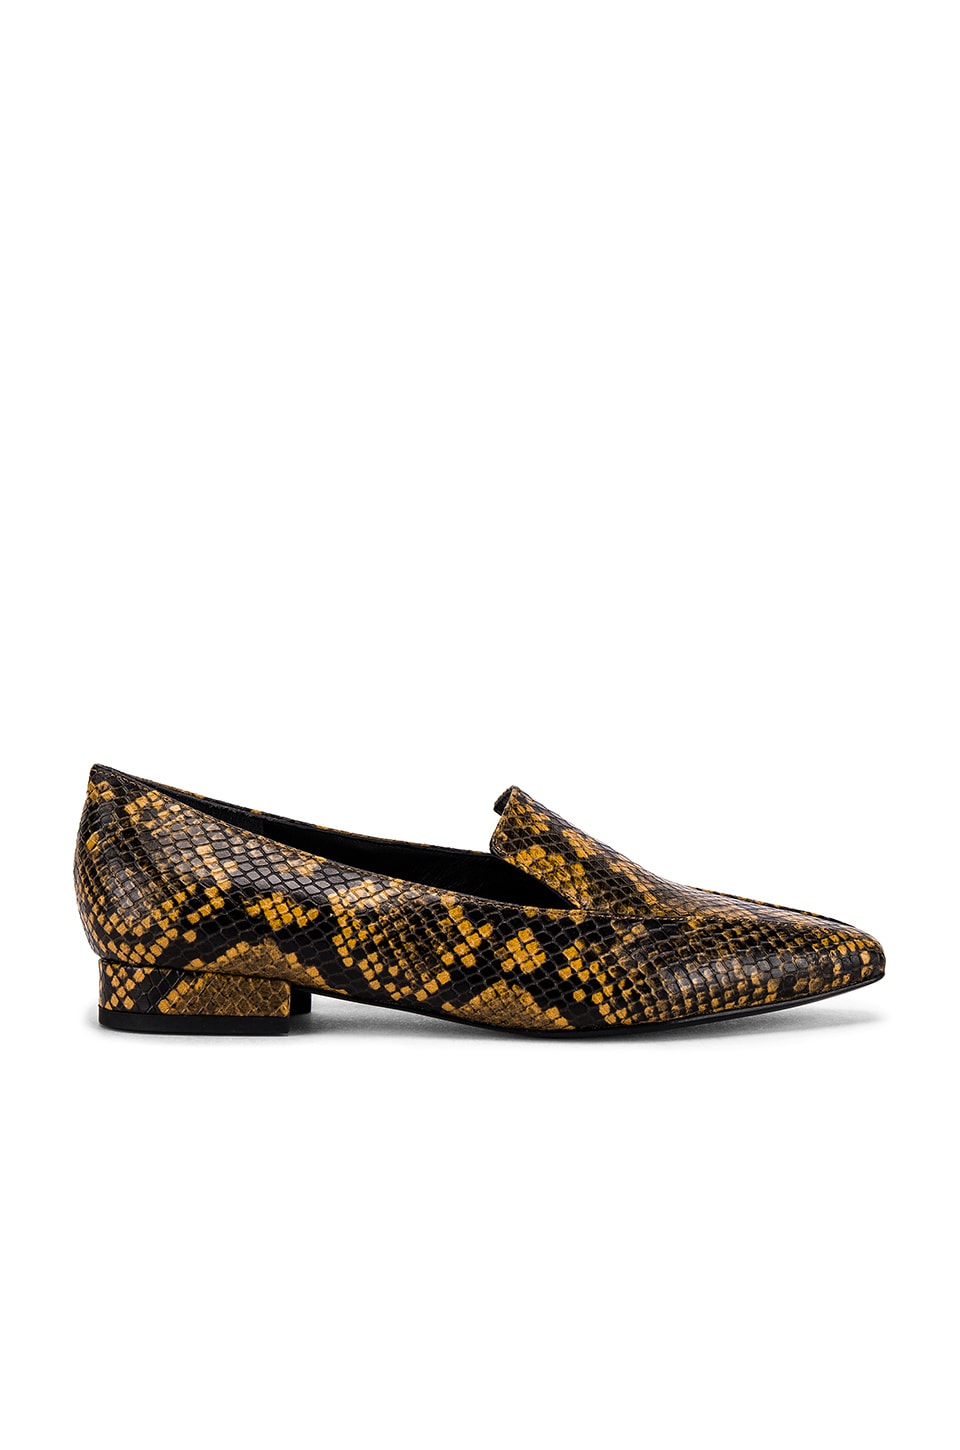 Sigerson Morrison Calida Loafer in Yellow & Black